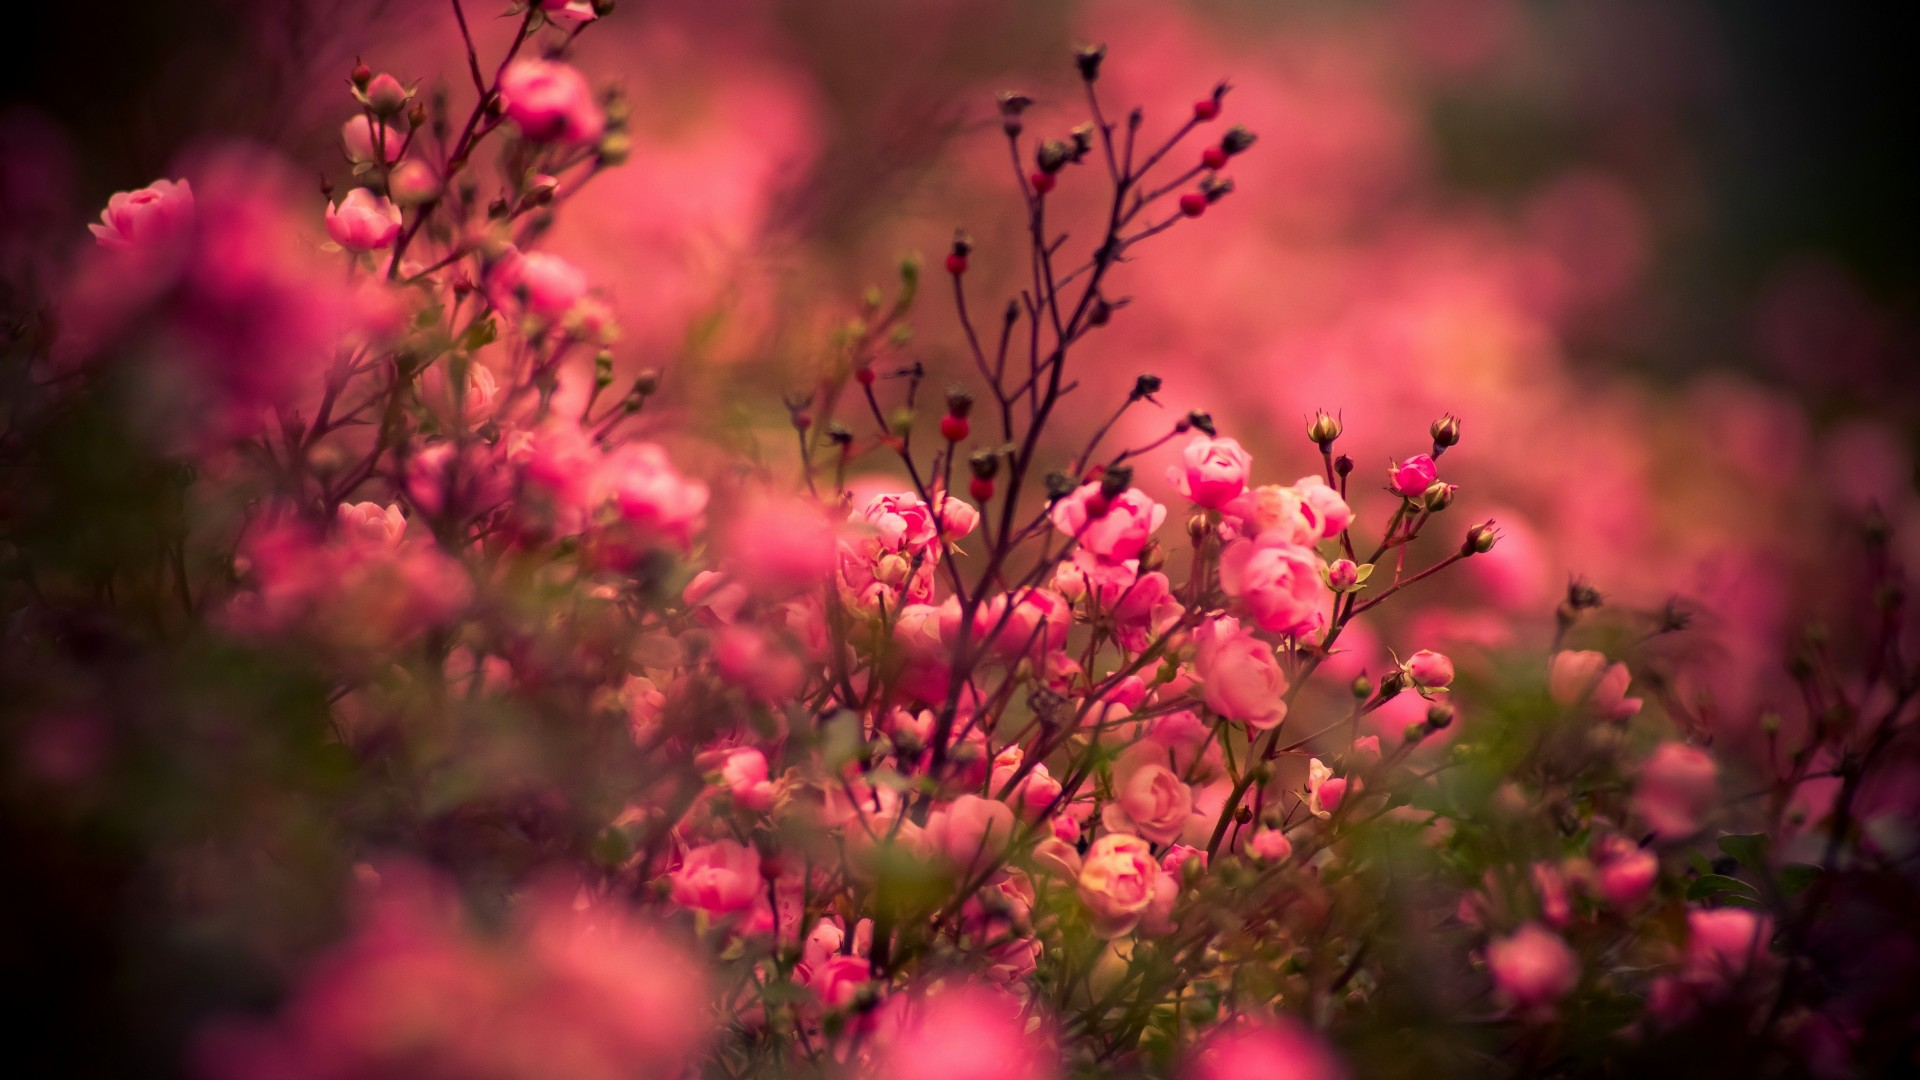 Wallpaper rose 5k 4k wallpaper pink bokeh nature 454 - Rose flowers wallpaper for mobile ...